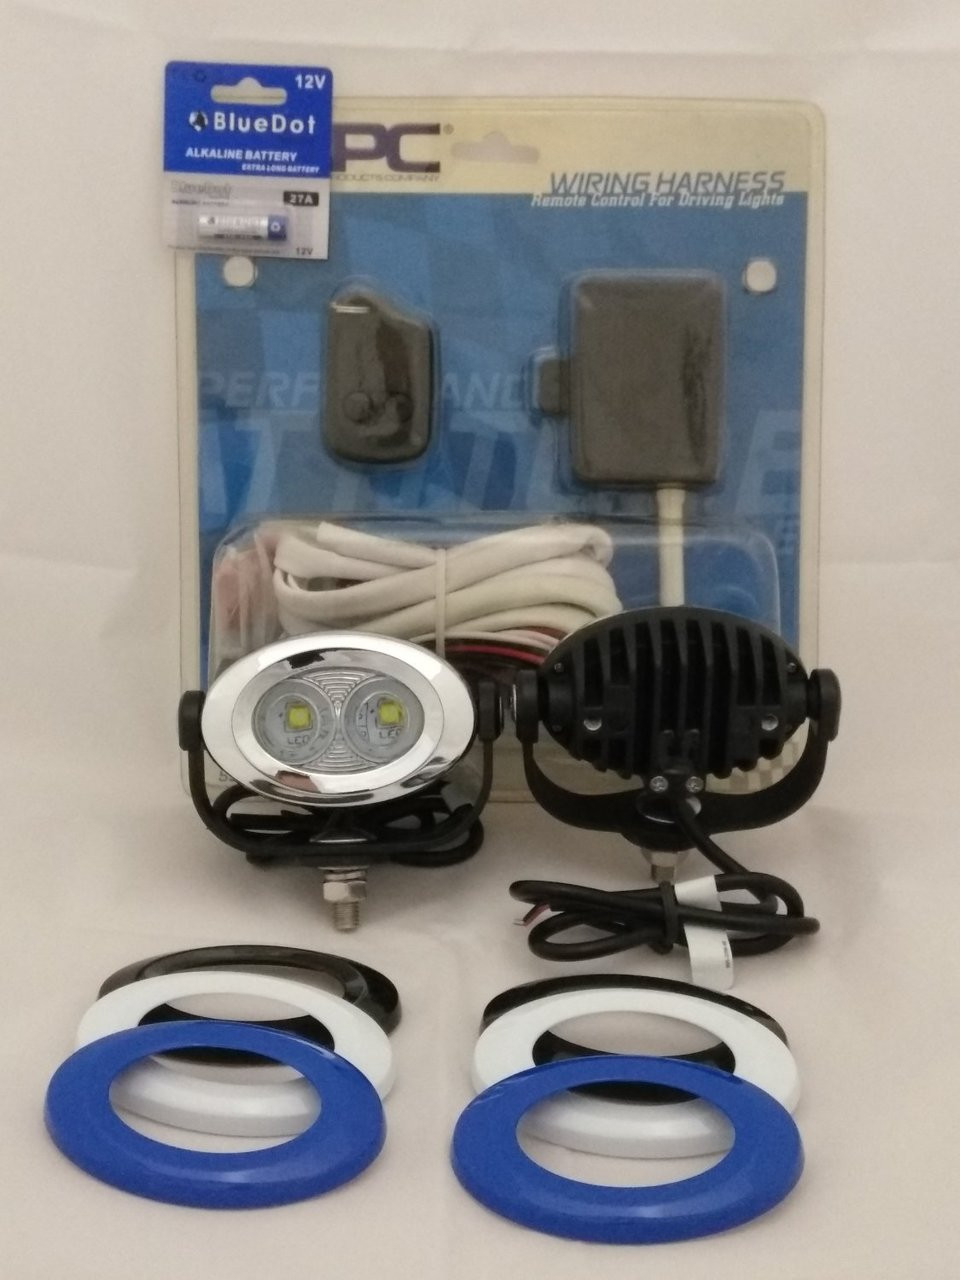 hight resolution of kawasaki klx250 klr650 auxiliary 6000k led lamps lights klx 250 klr 650